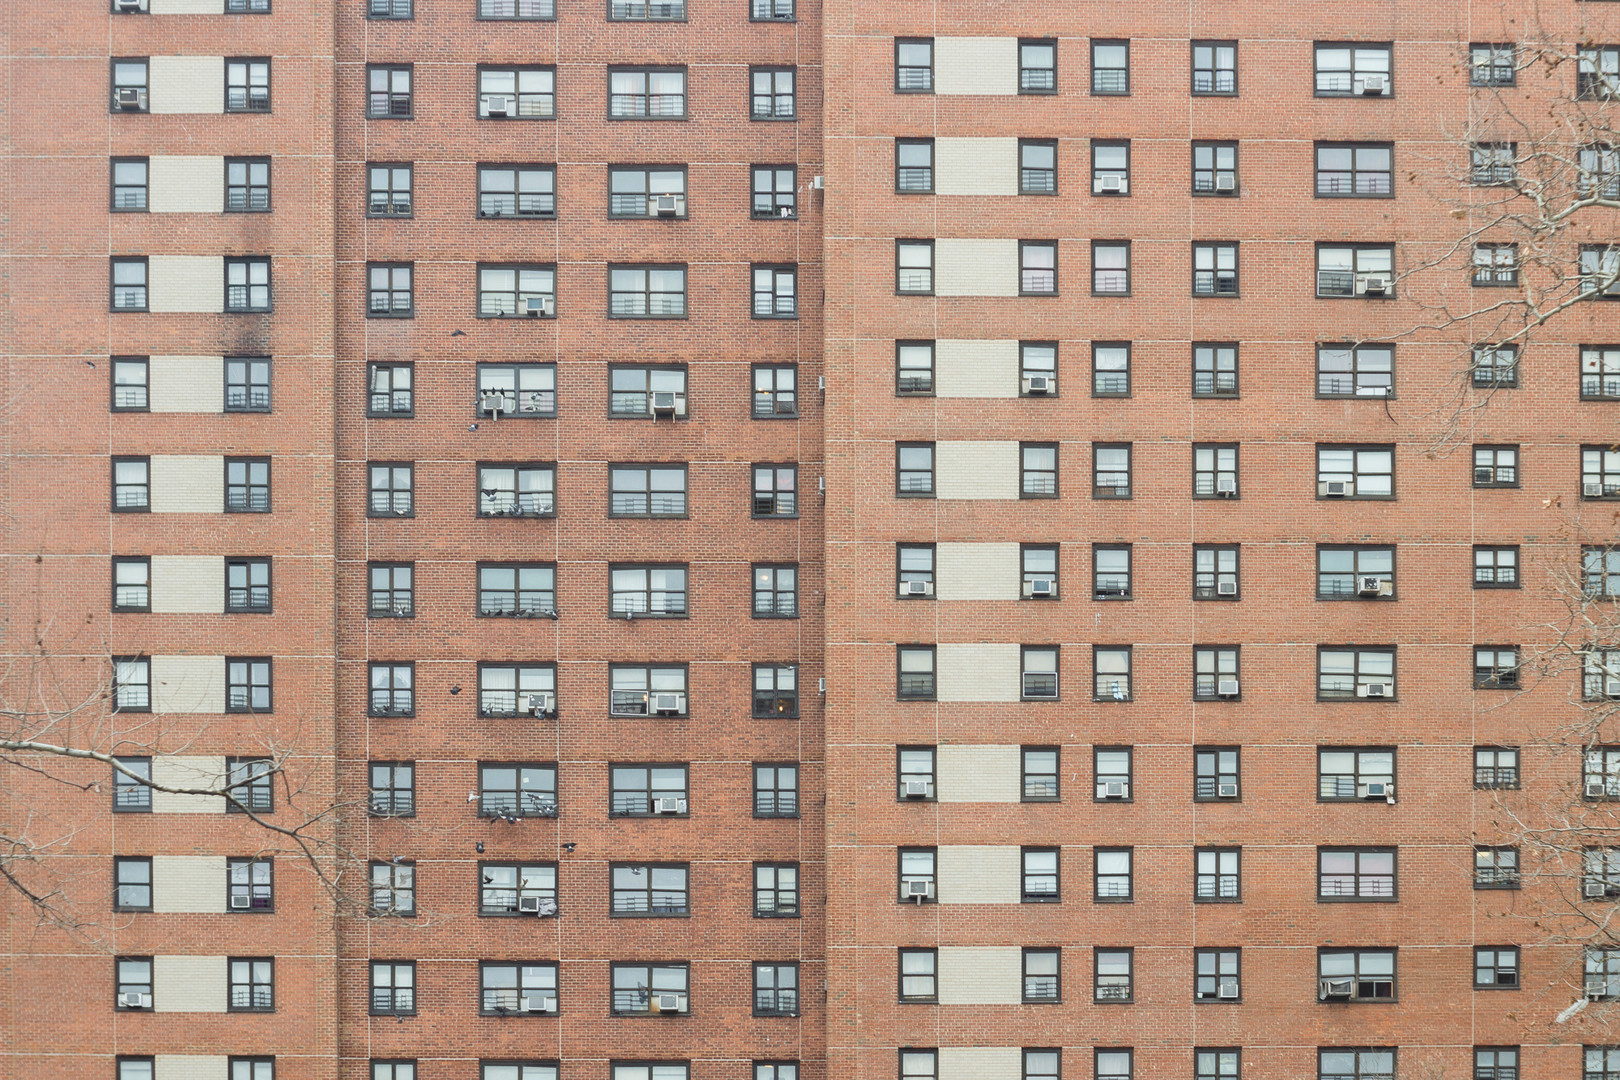 Residencial Houses in Harlem, December 2014